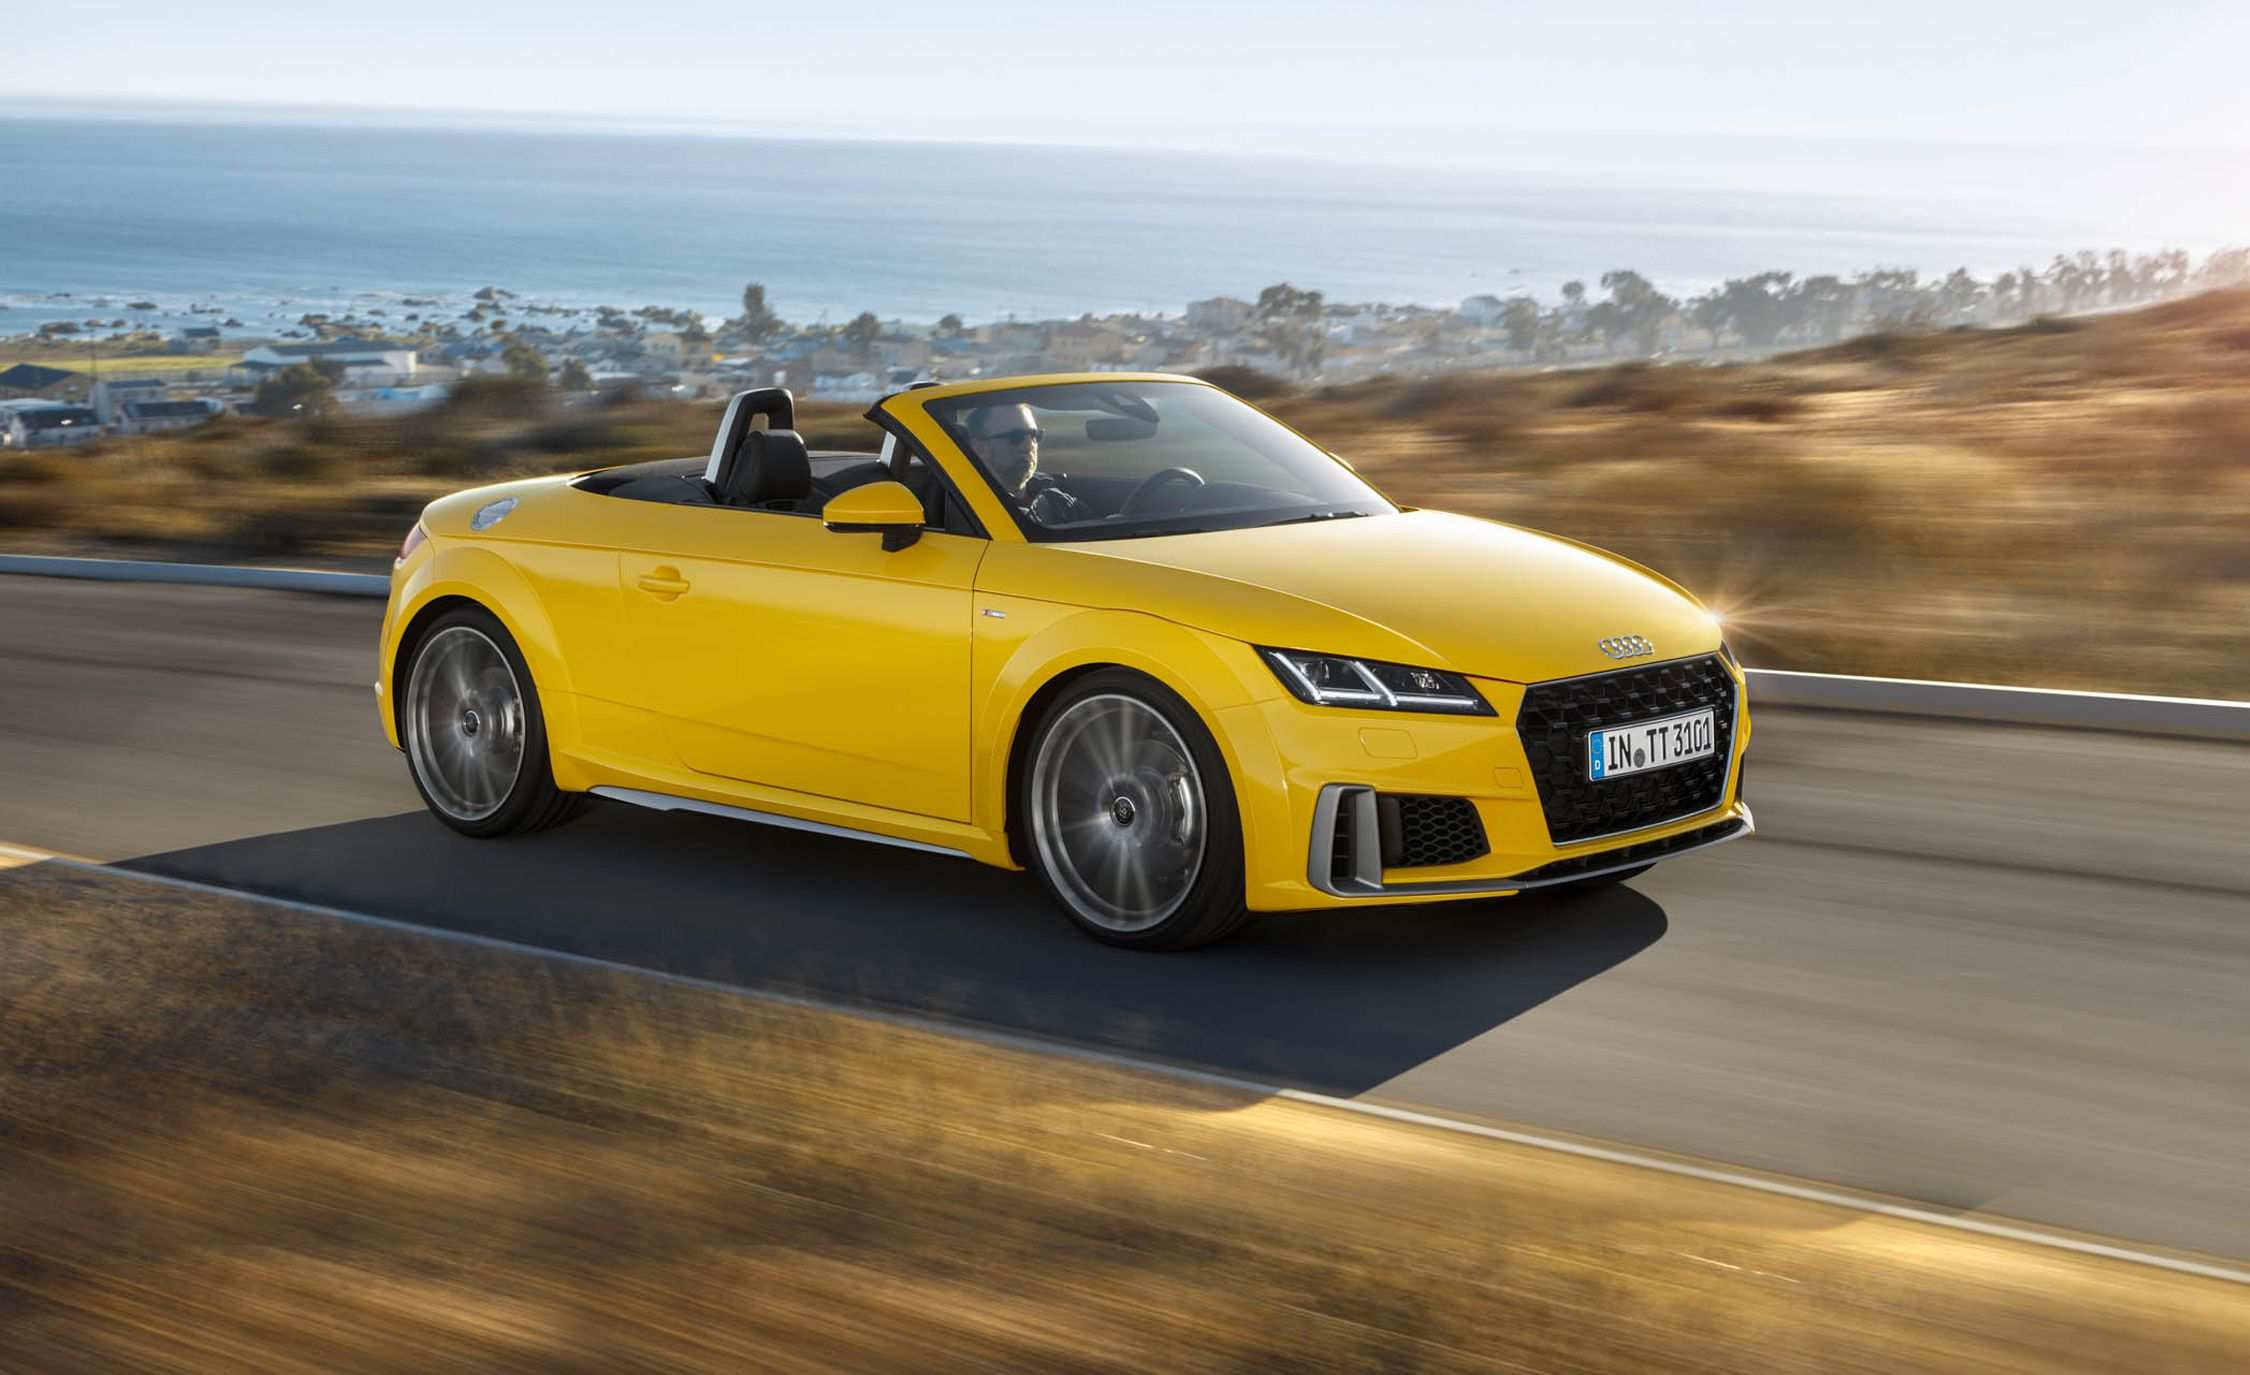 90 Great 2019 Audi Tt Price and Review by 2019 Audi Tt